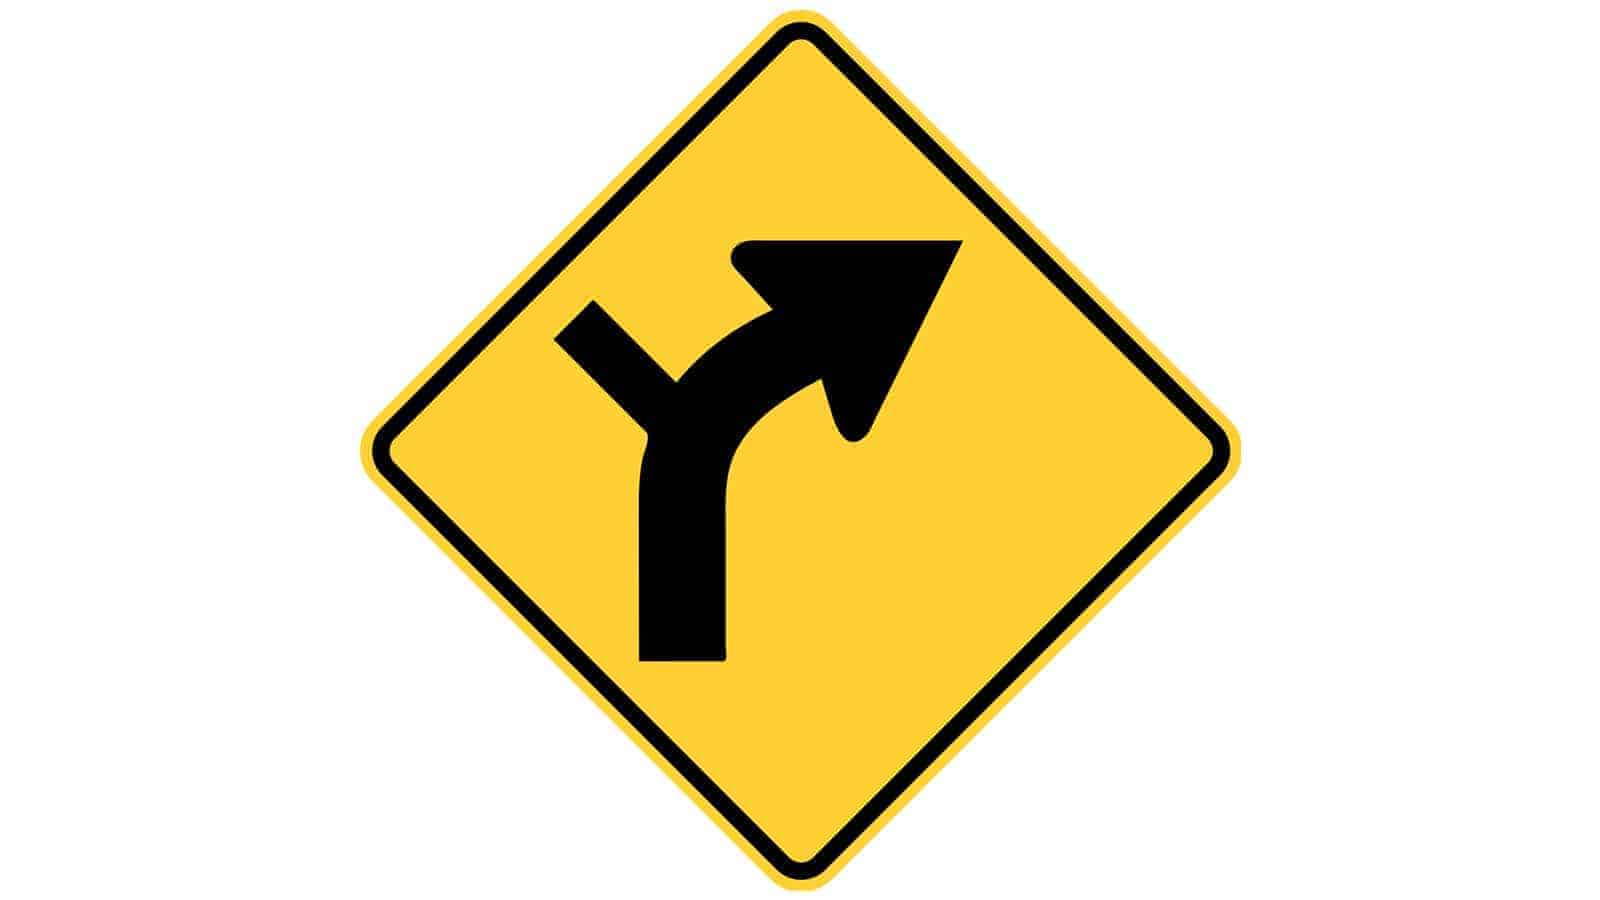 Warning sign Main Road Curves to the Right Ahead